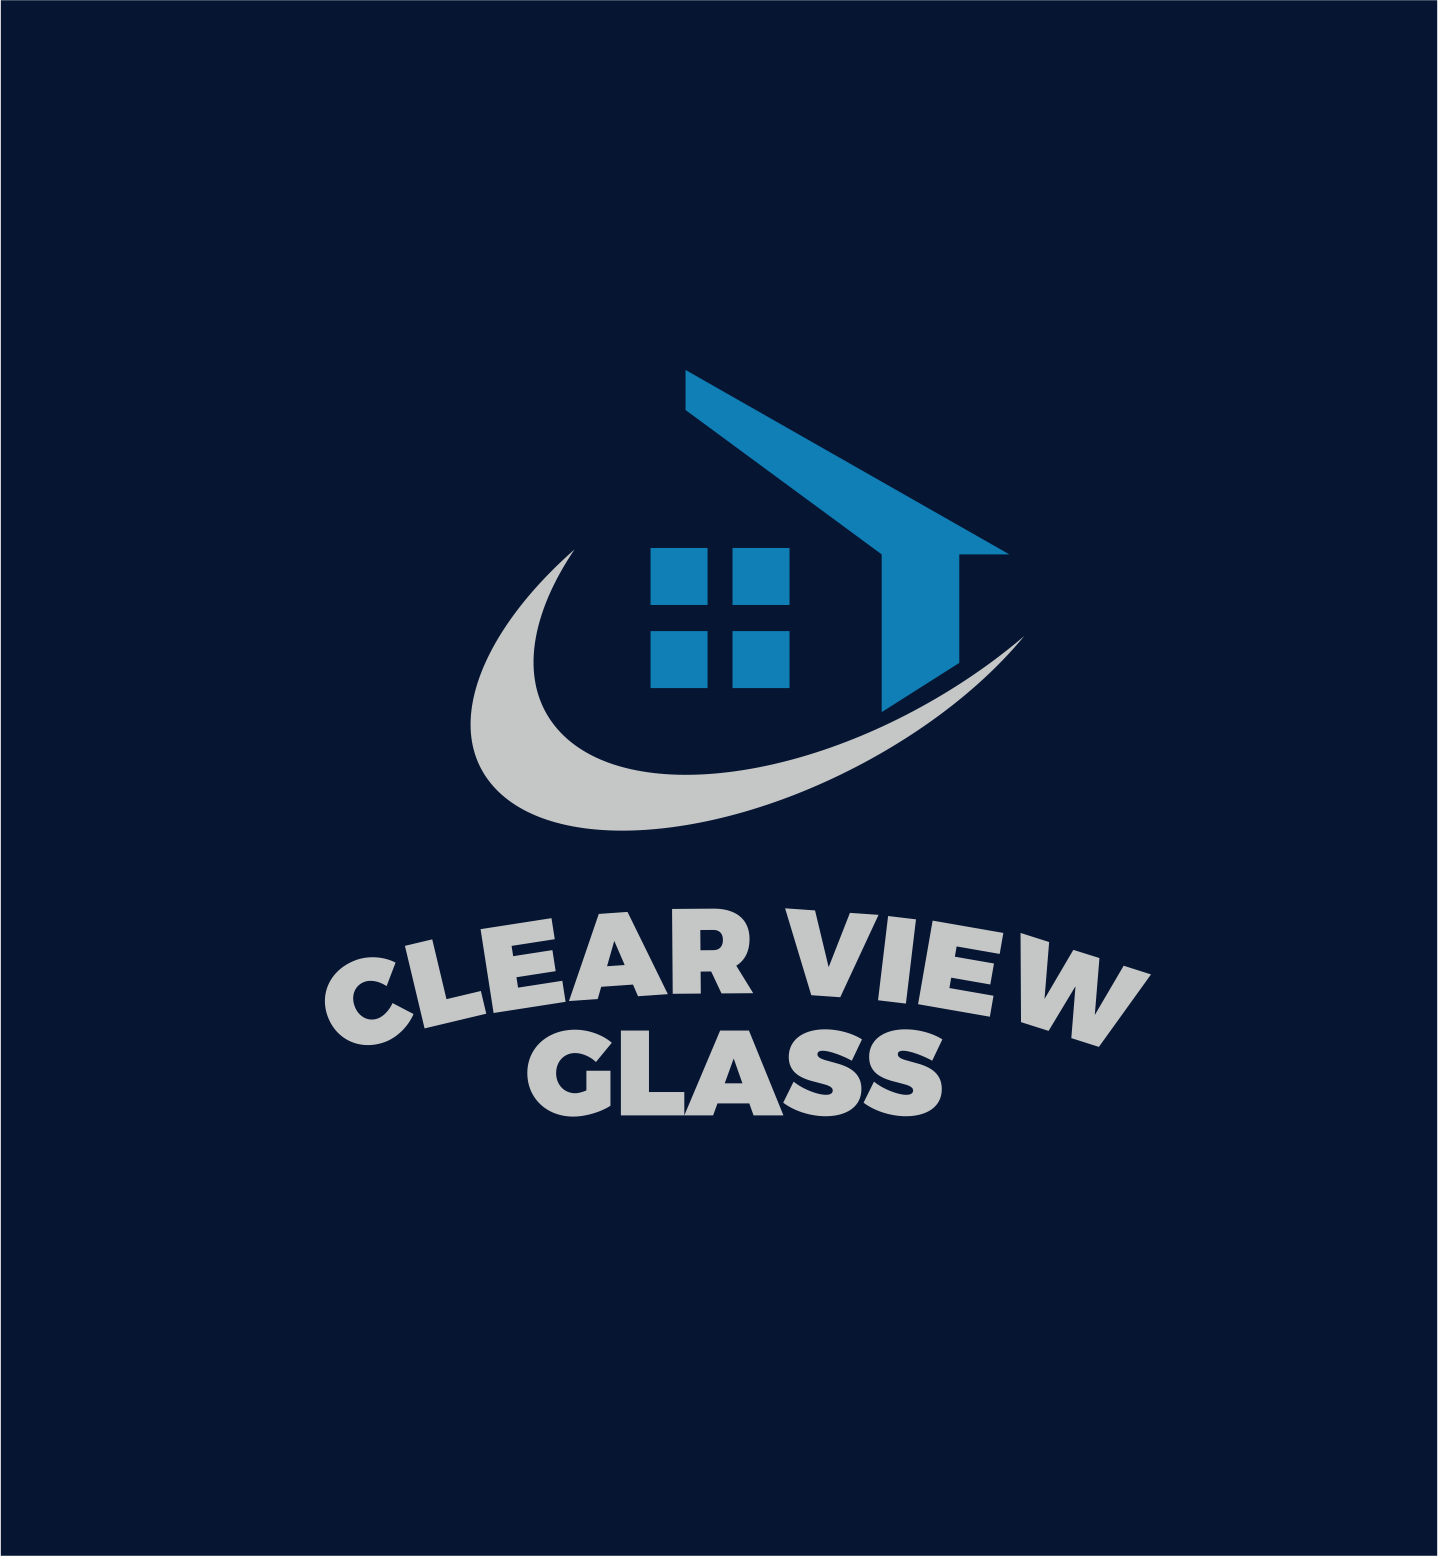 Clear View Glass